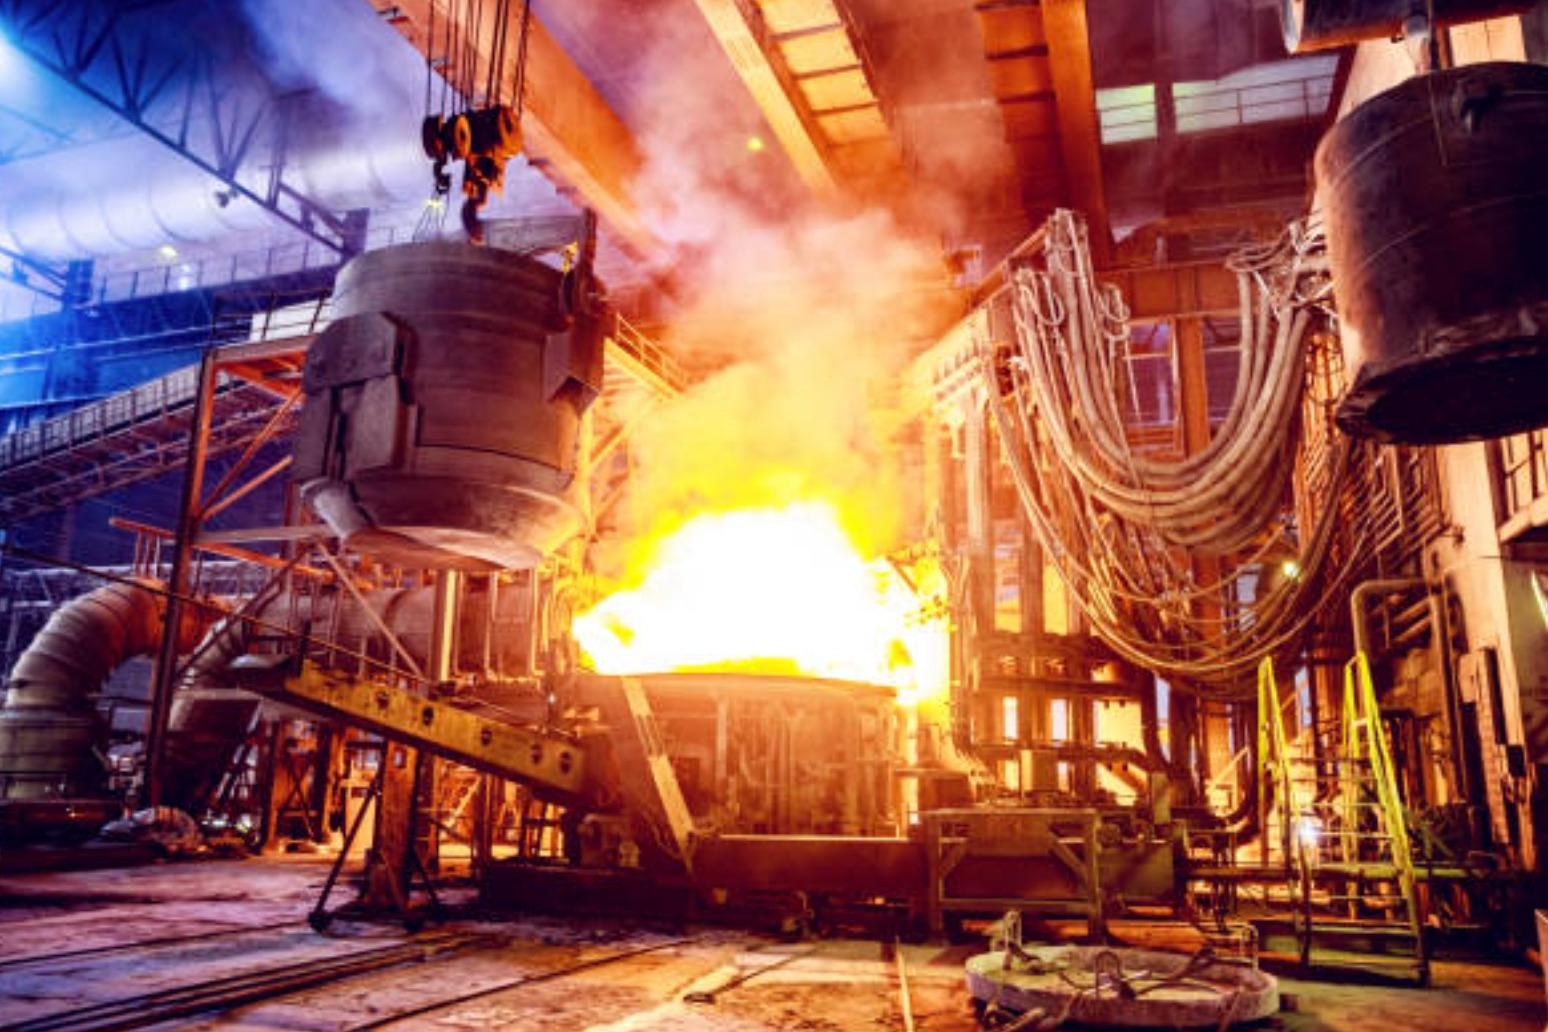 Steel industry leaders in plea to be added to self-isolation exemption list